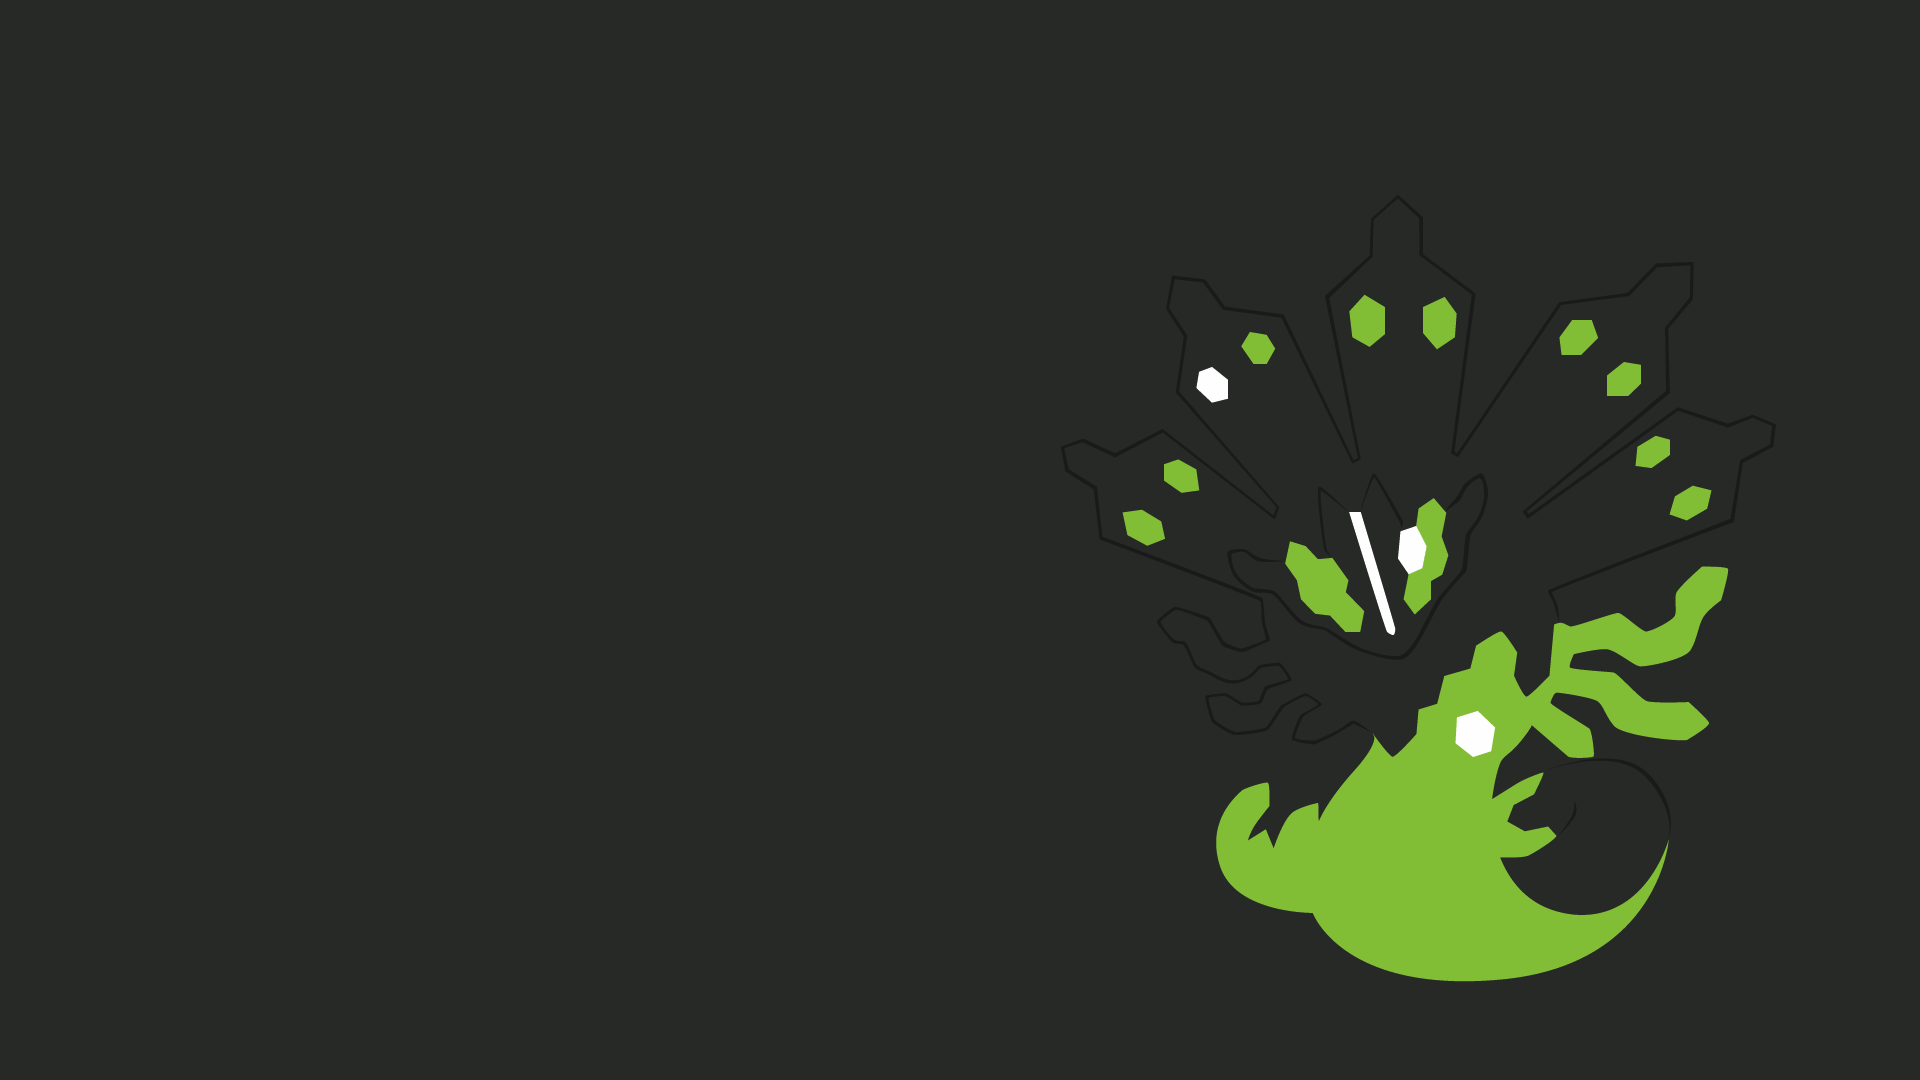 Pokemon Zygarde Wallpaper Wallpaper 1080p wallpaper 1920x1080